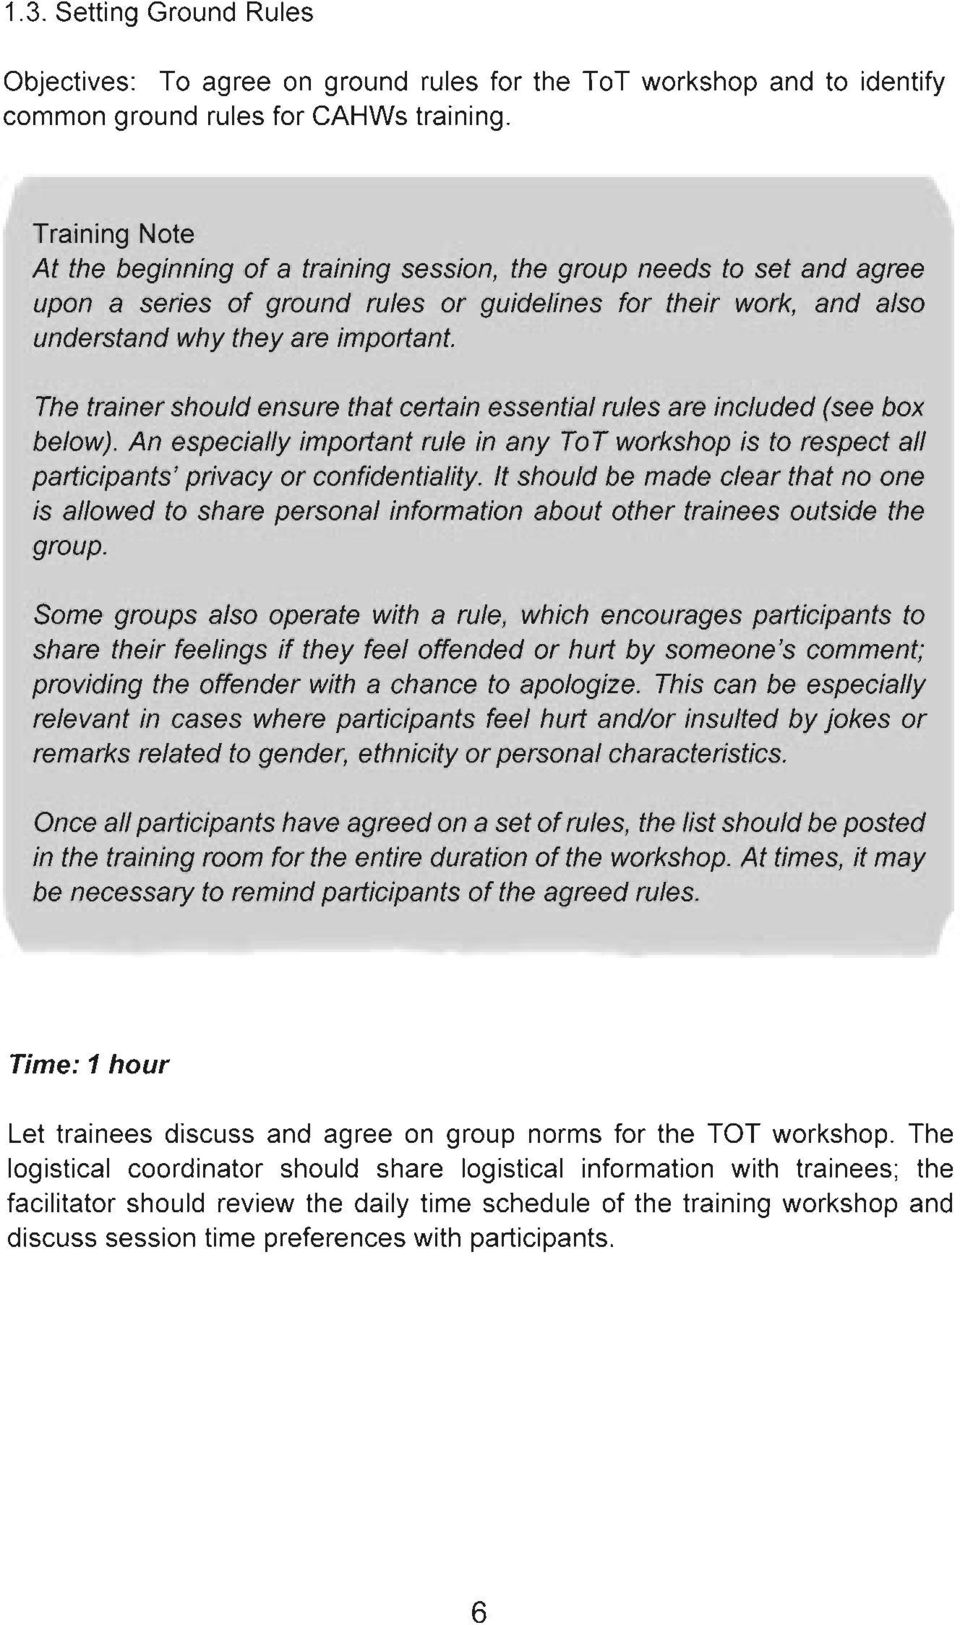 The trainershould ensure that certain essential rules are included (see box below). An especially important rule in any ToT workshop is to respect all participants' privacy or confidentiality.